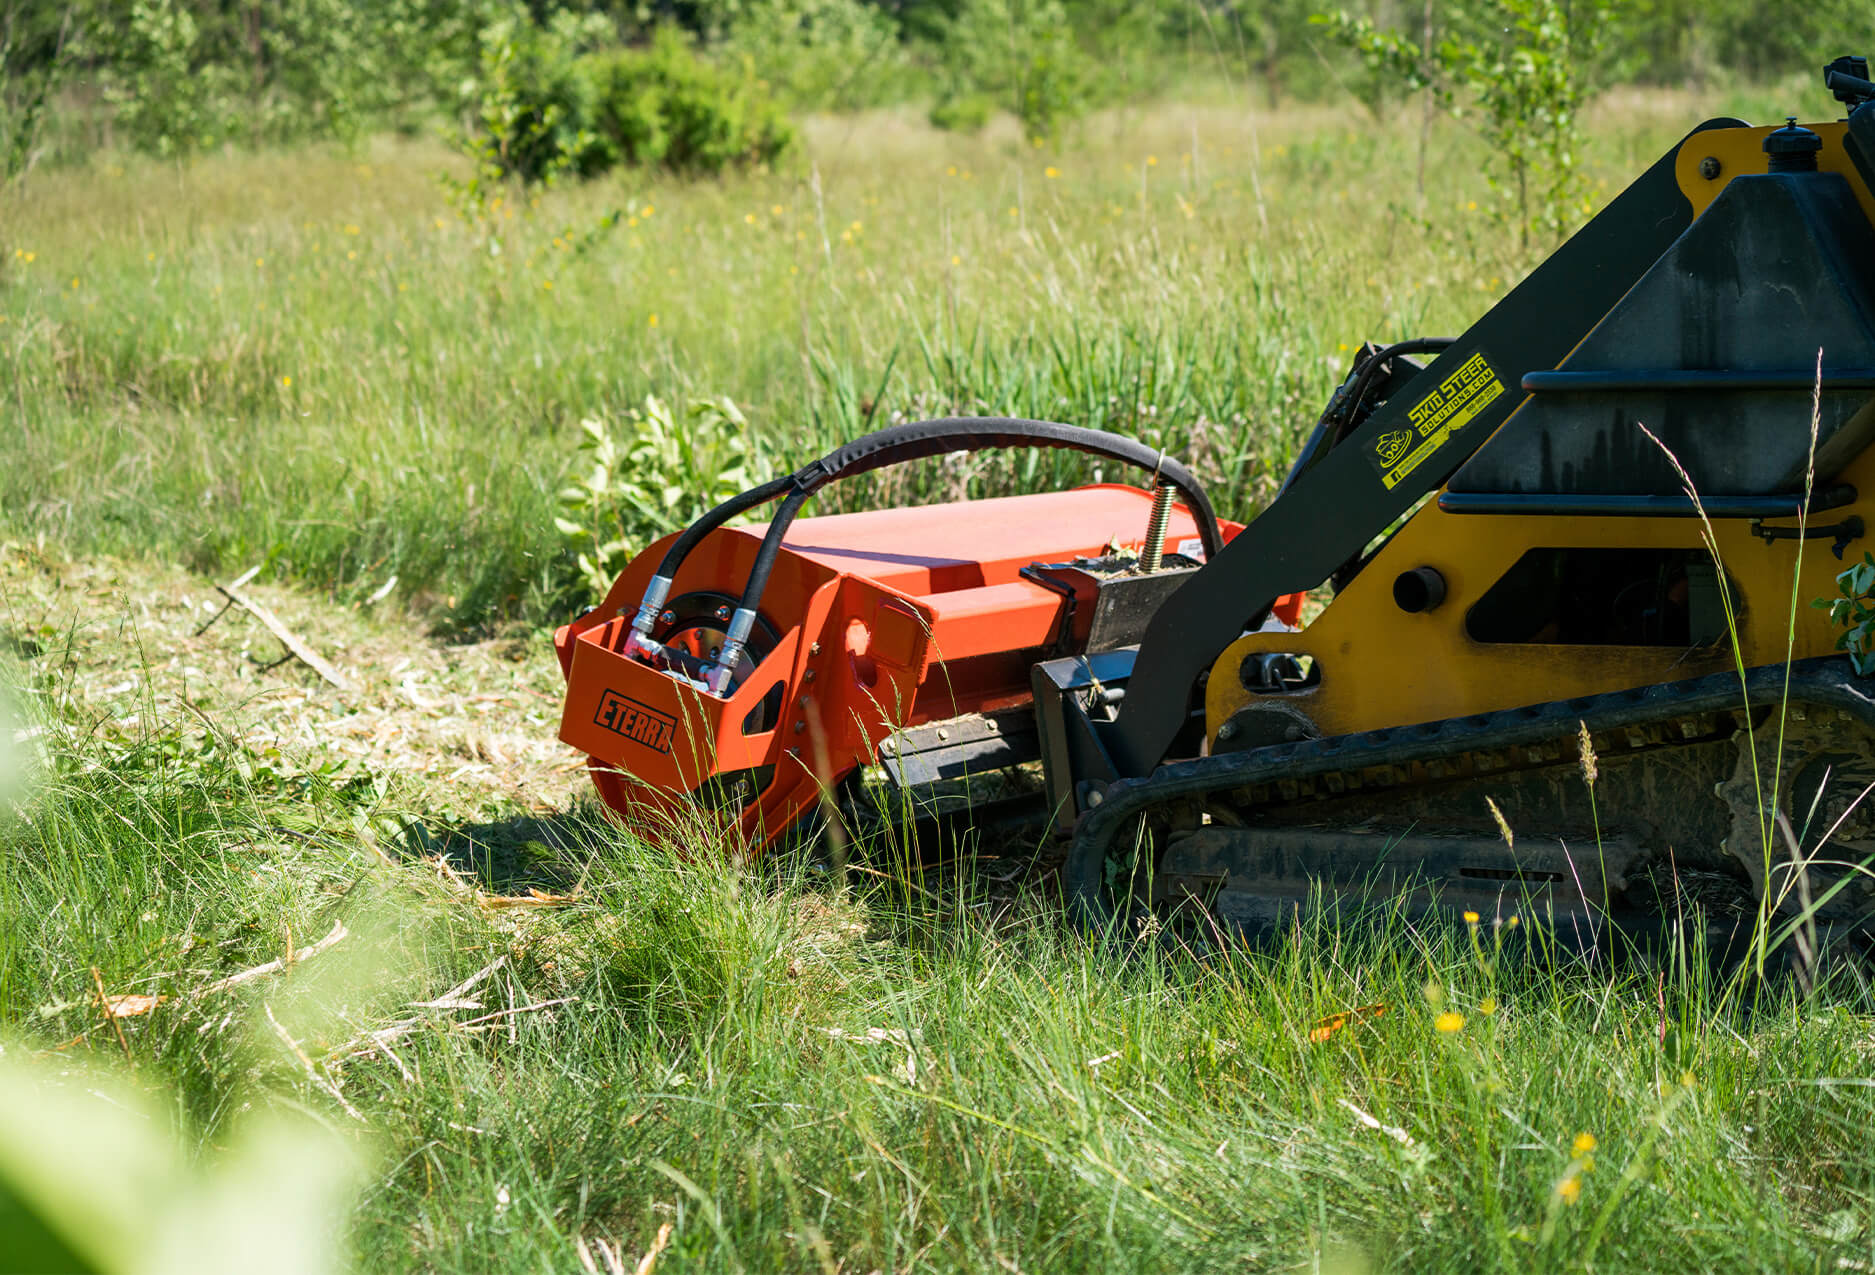 Eterra Sidewinder mini Skid Steer flail mower back angle